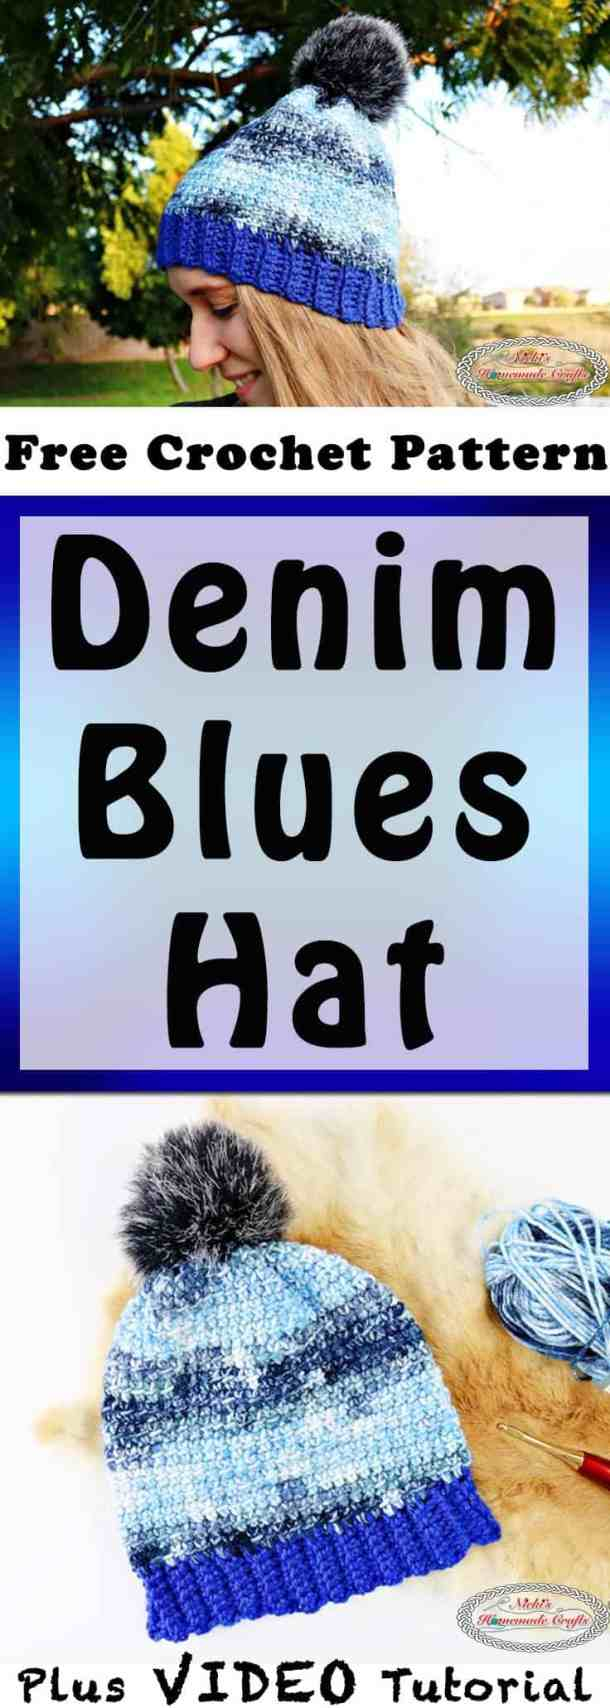 Denim Blues Hat which is a Free Crochet Pattern by Nicki's Homemade Crafts